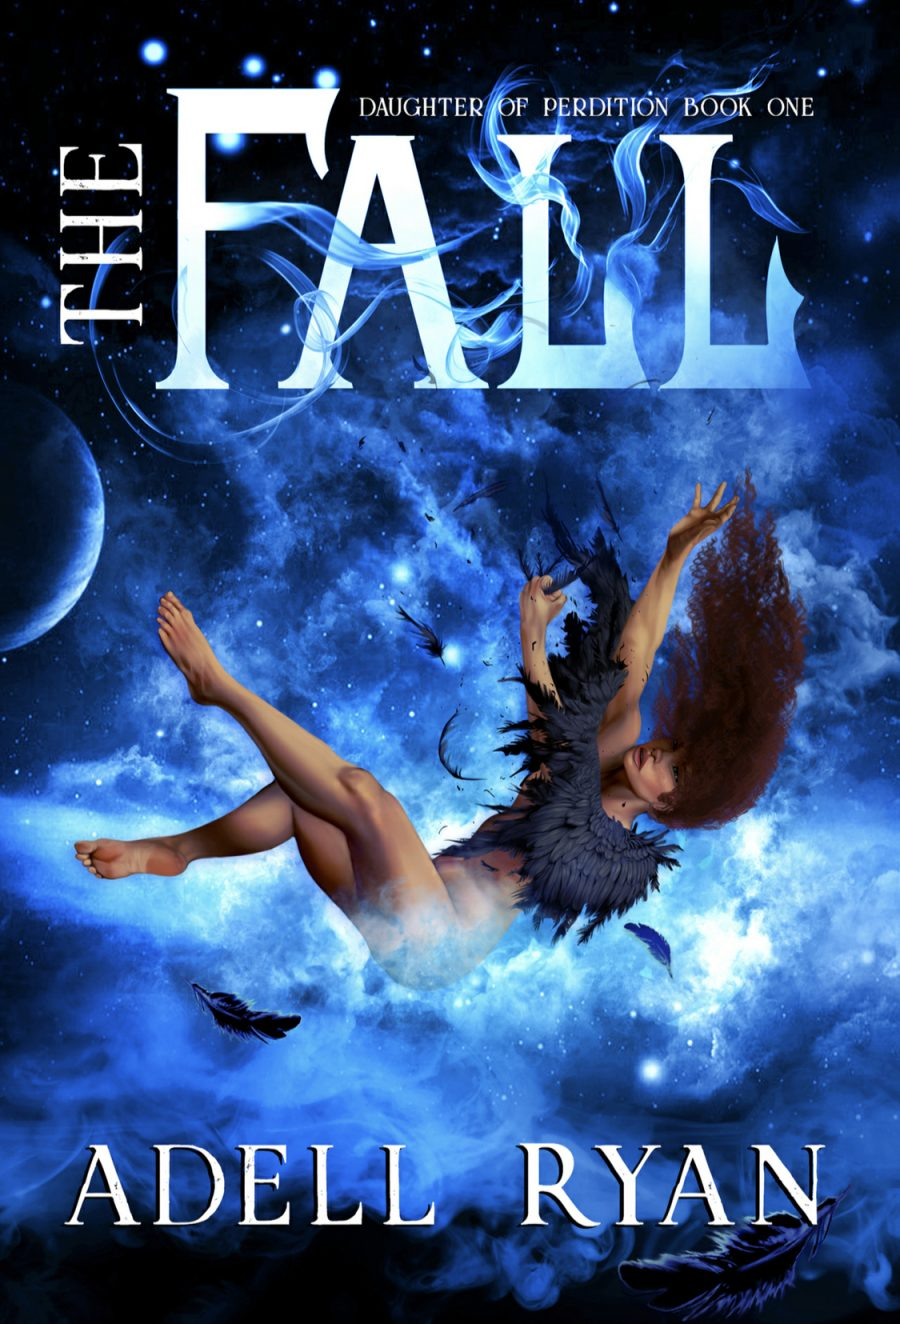 The Fall (Daughter of Perdition - Book 1) by Adell Ryan - A Book Review #FastBurn #Fantasy #RH #4Stars #KindleUnlimited #KU